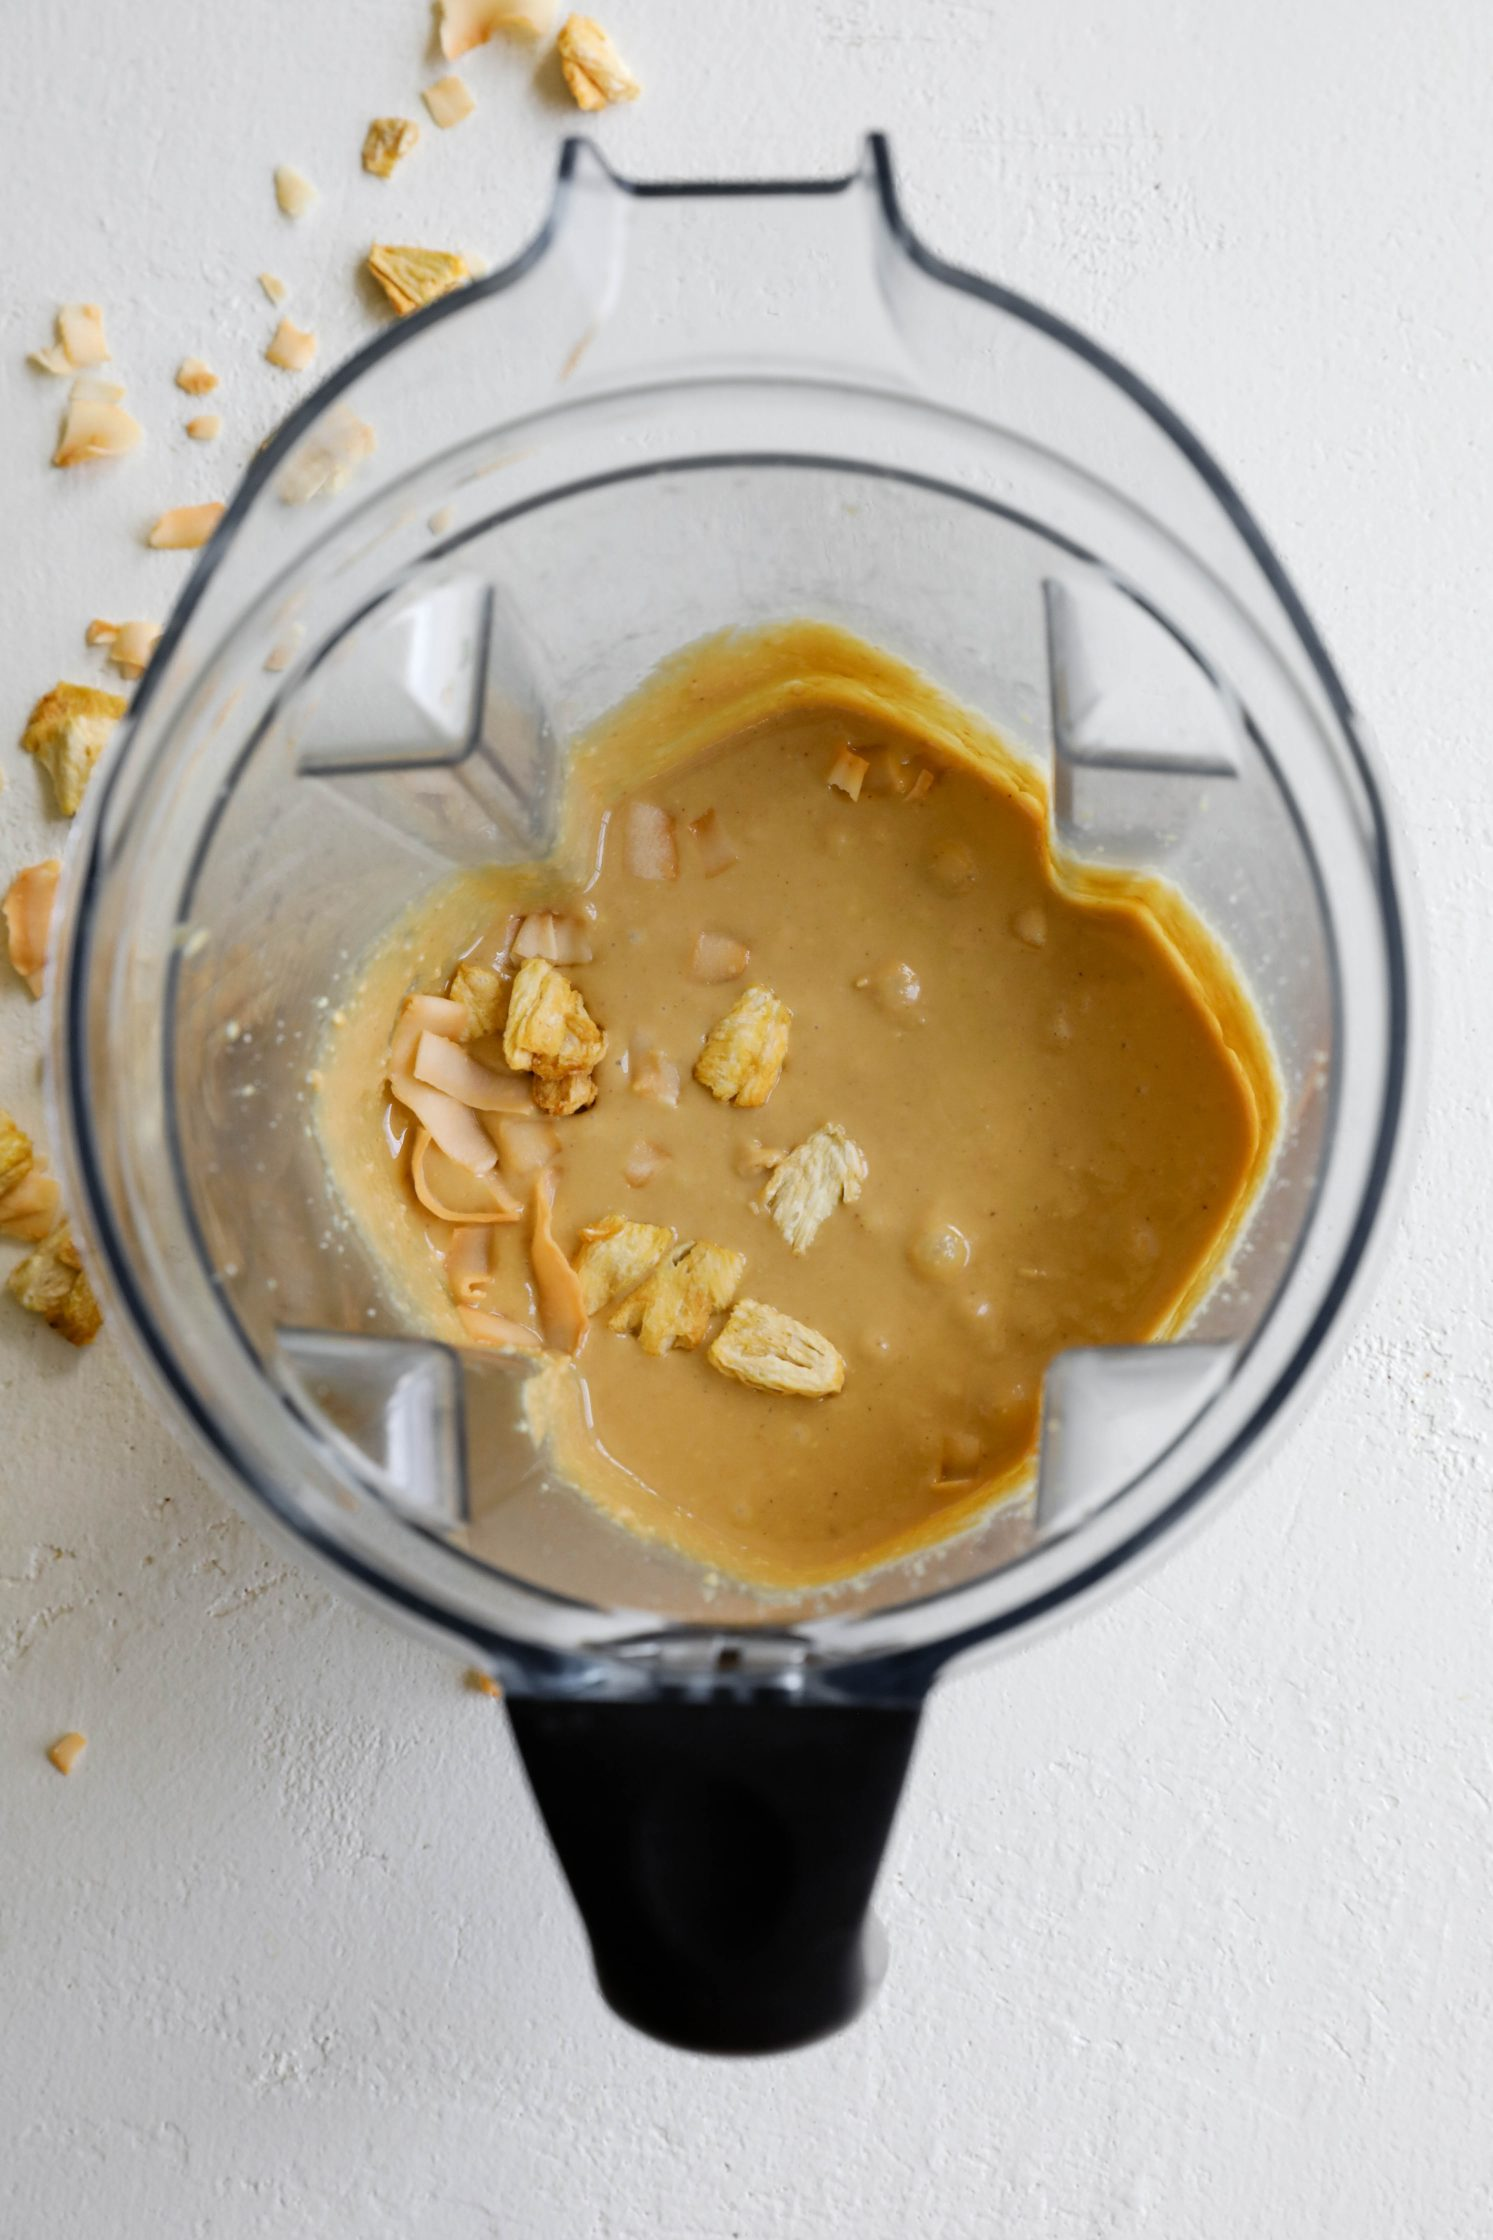 Piña Colada Peanut Butter in blender